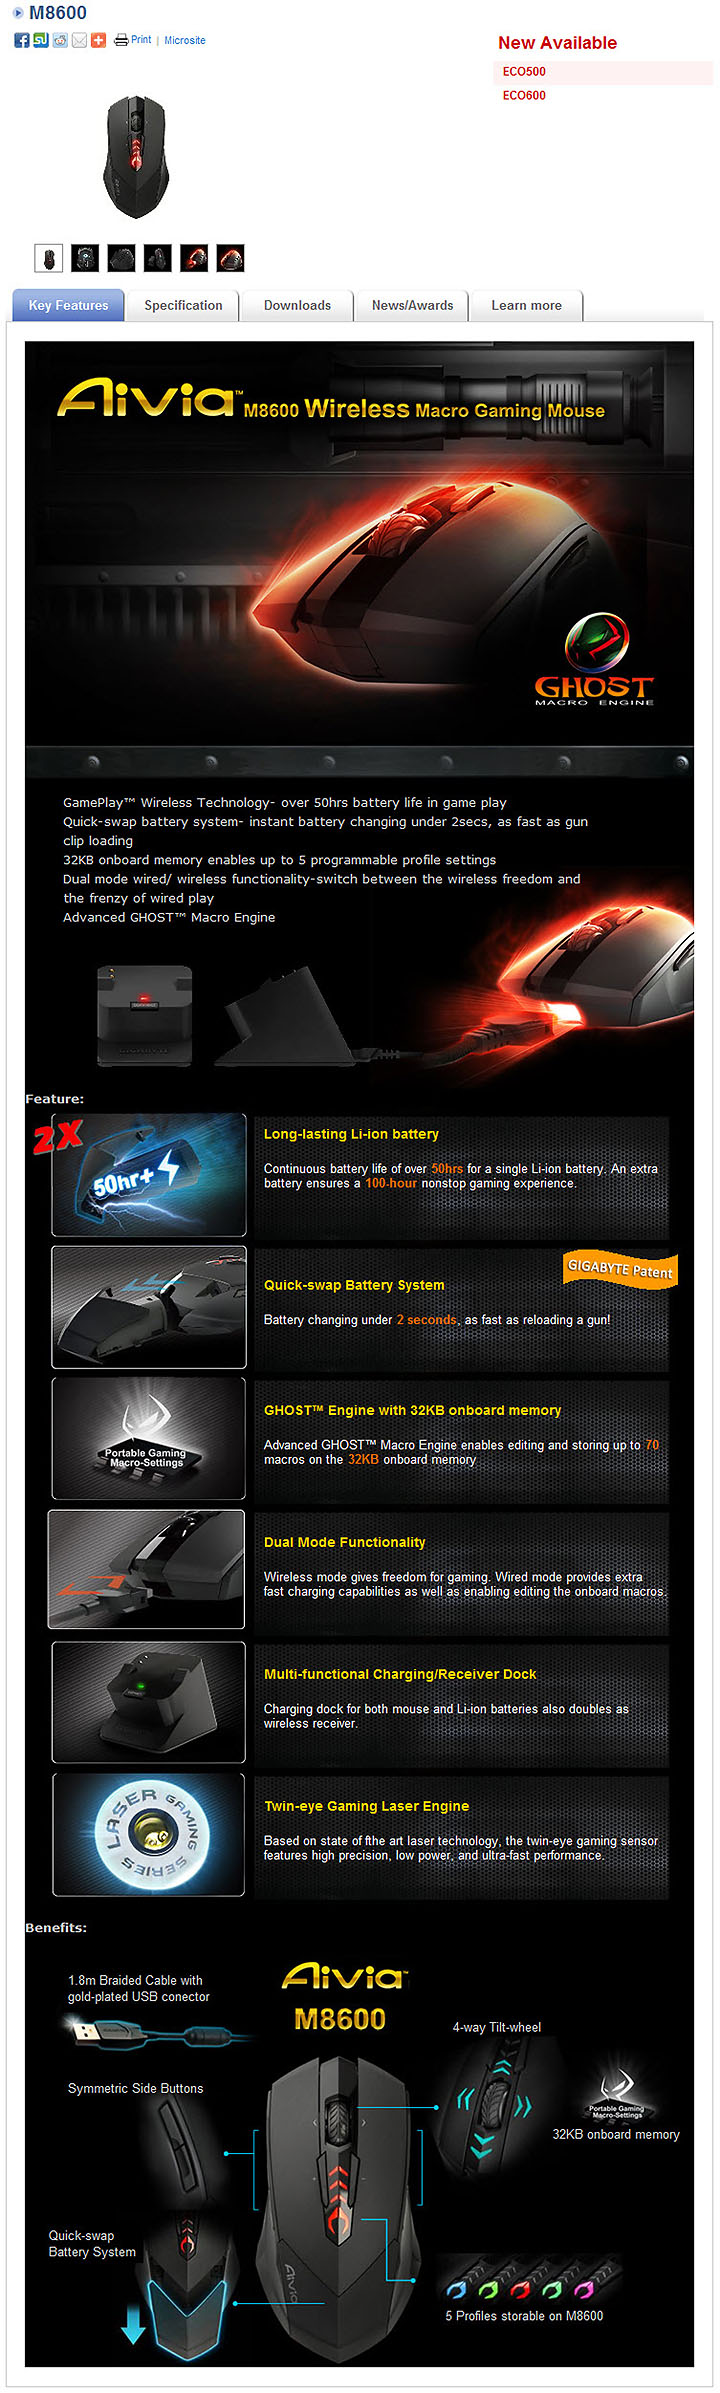 8 13 2011 9 28 28 pm Gigabyte M8600 Wireless Gaming Mouse